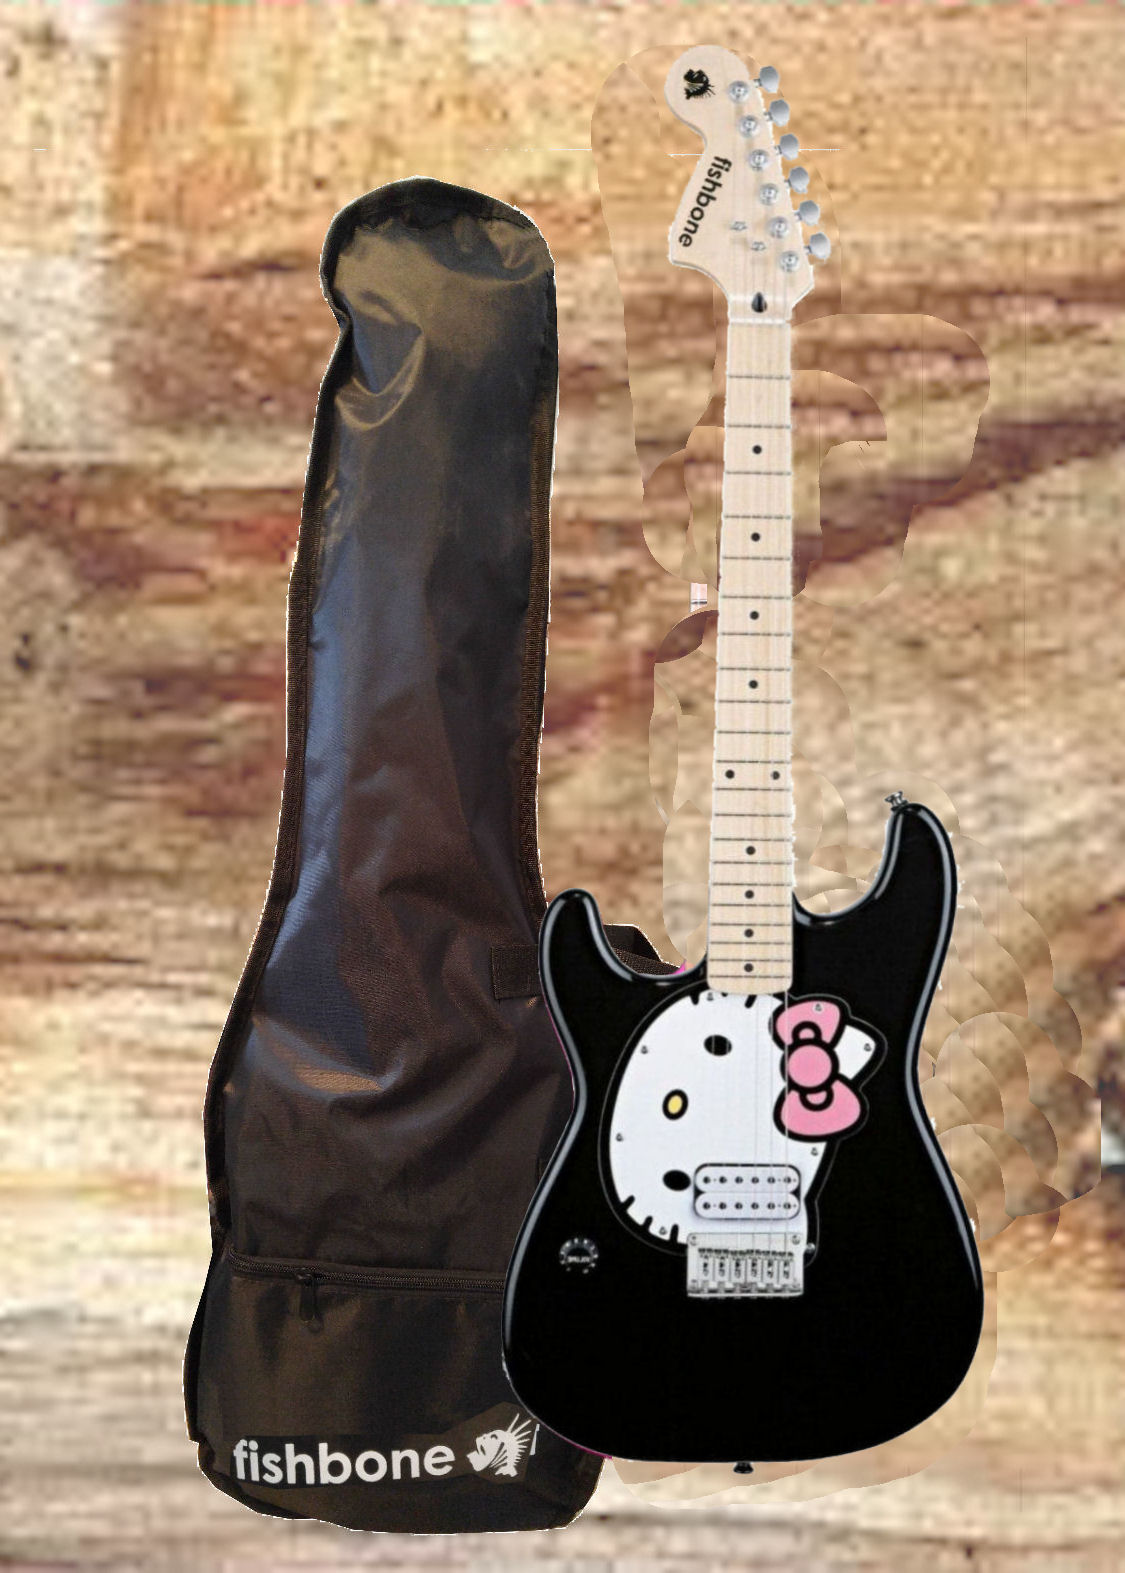 fishbone HELLO KITTY-BLACK 3/4 Size LEFTY